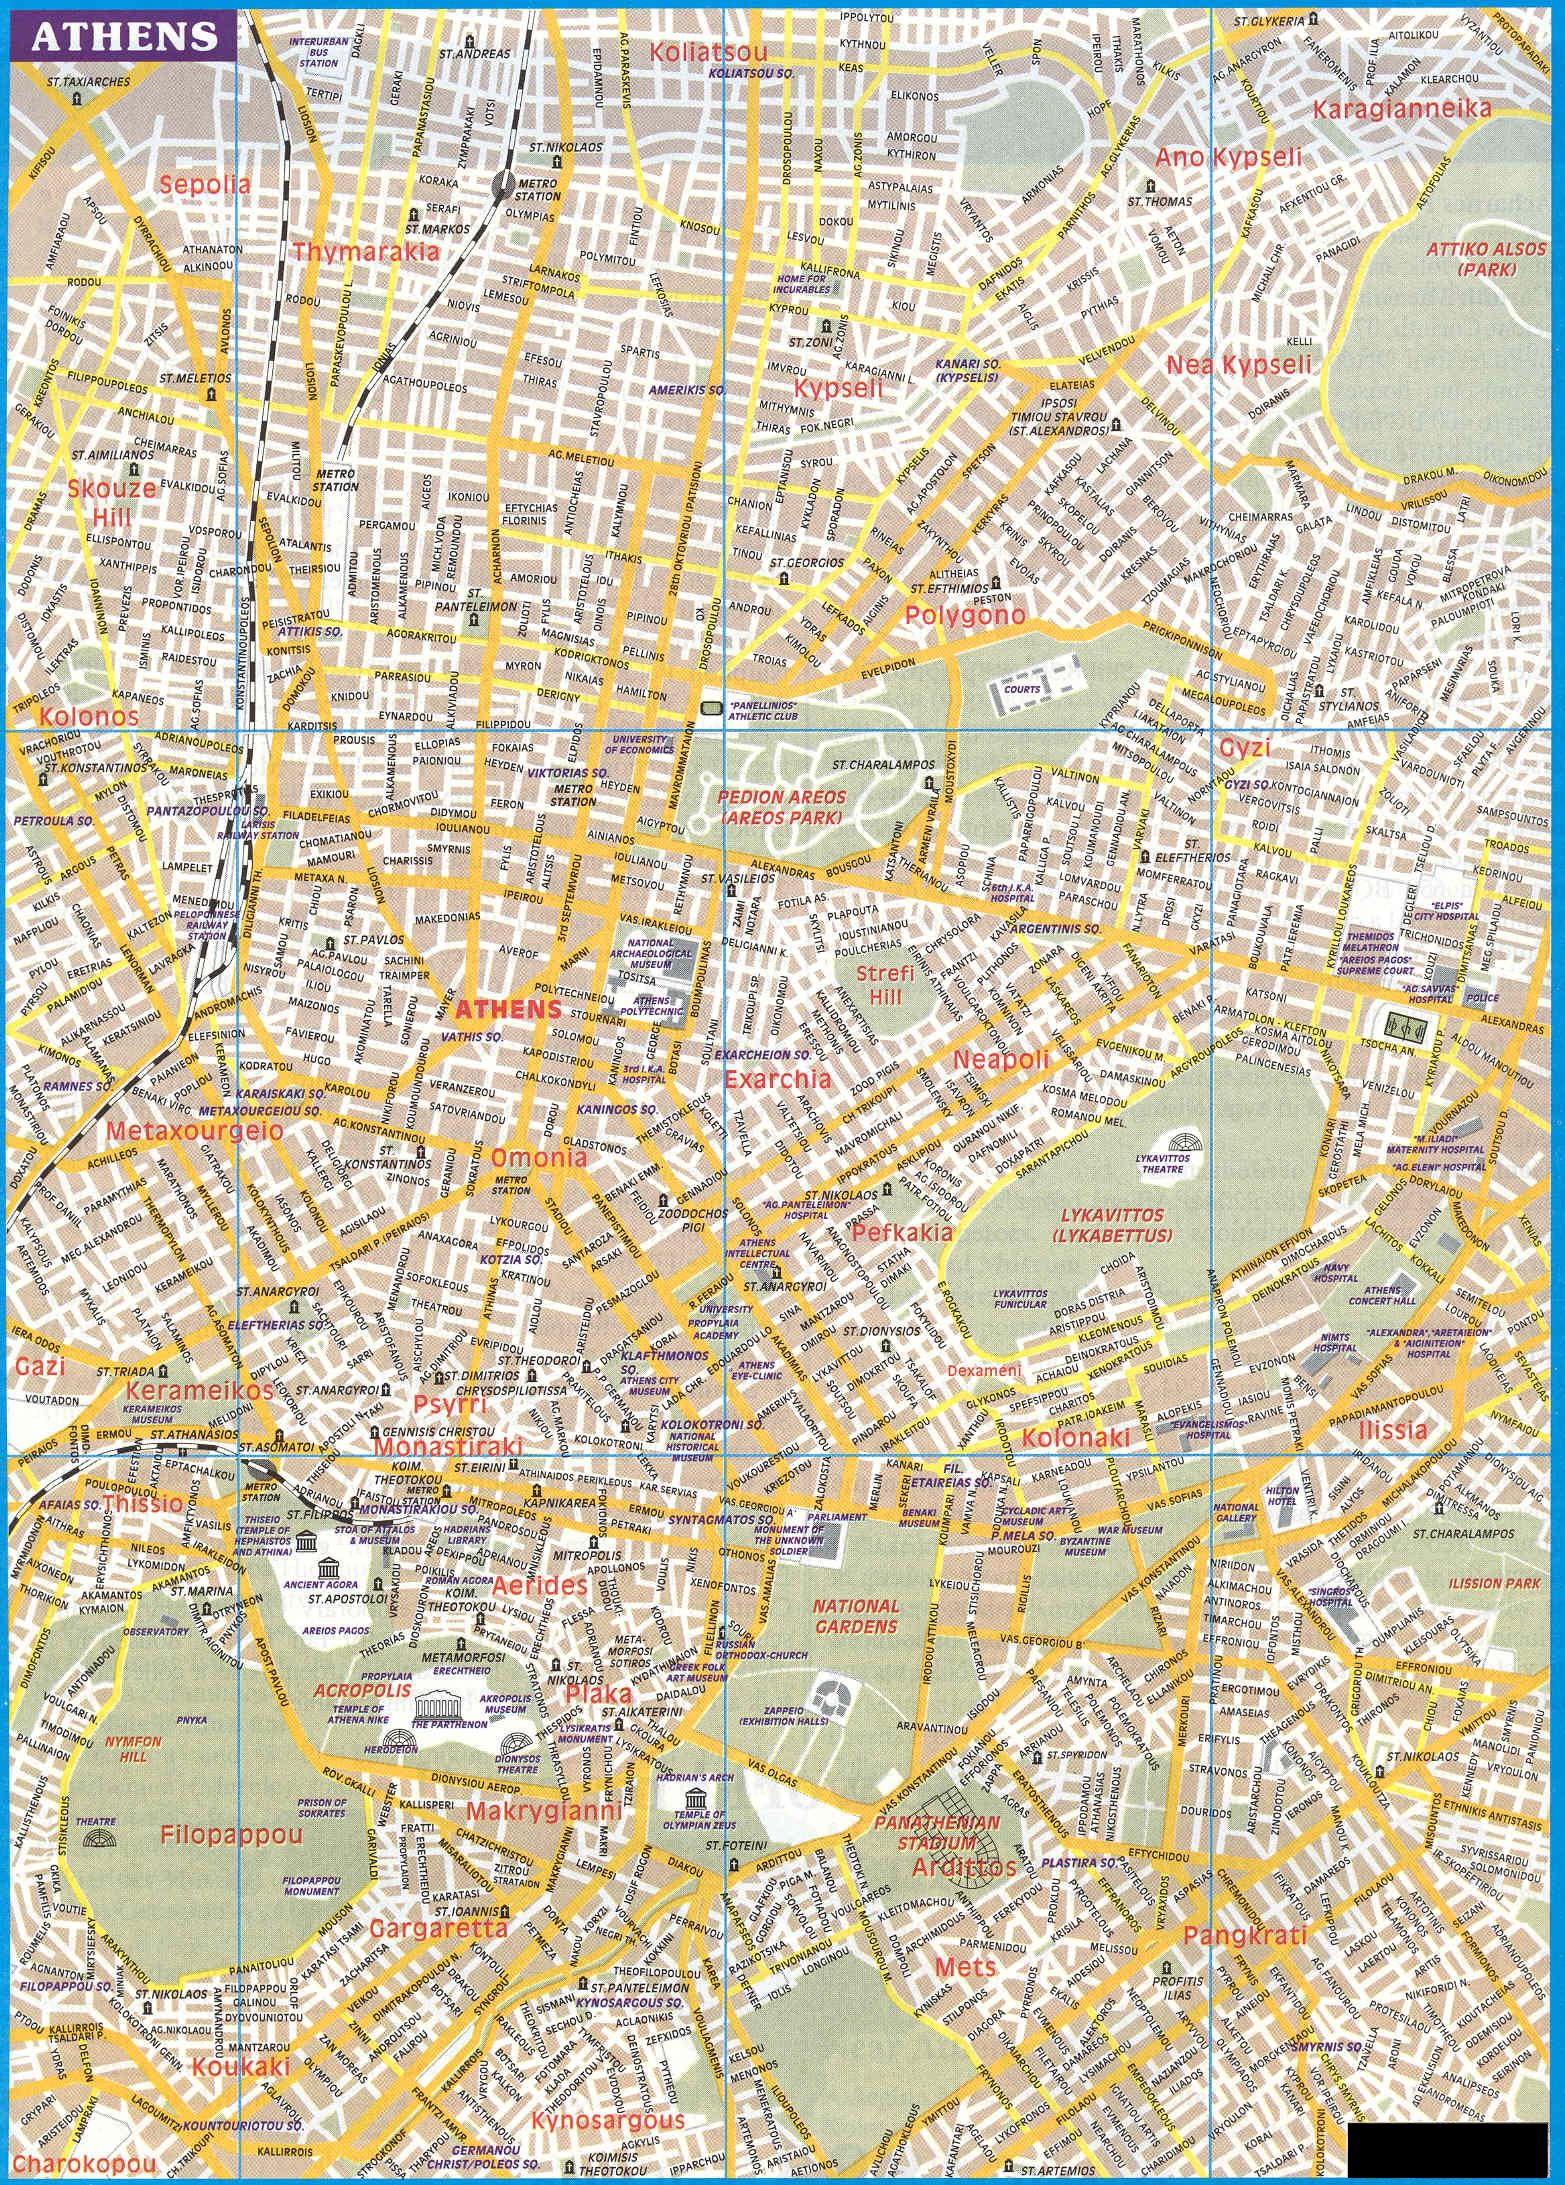 Maps of Greece and the capital city of Athens